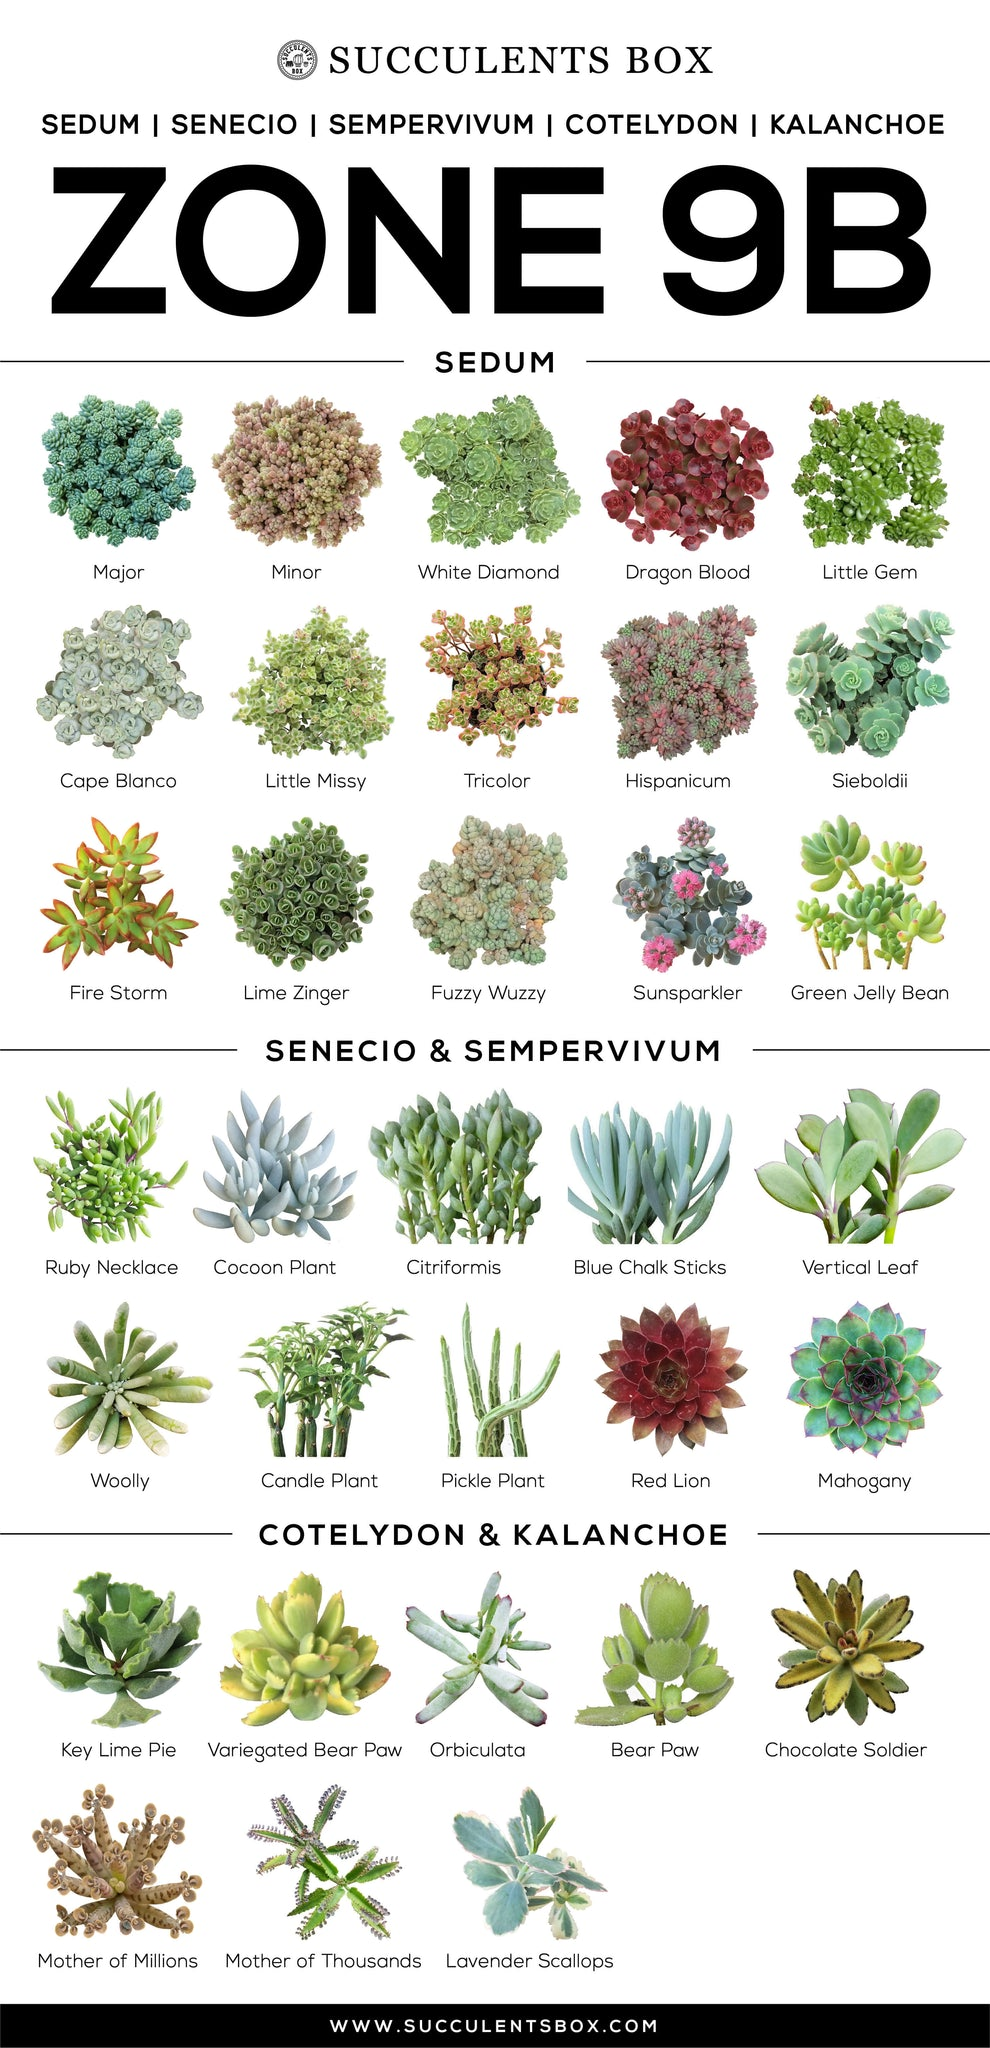 List of Succulents in Zone 9b